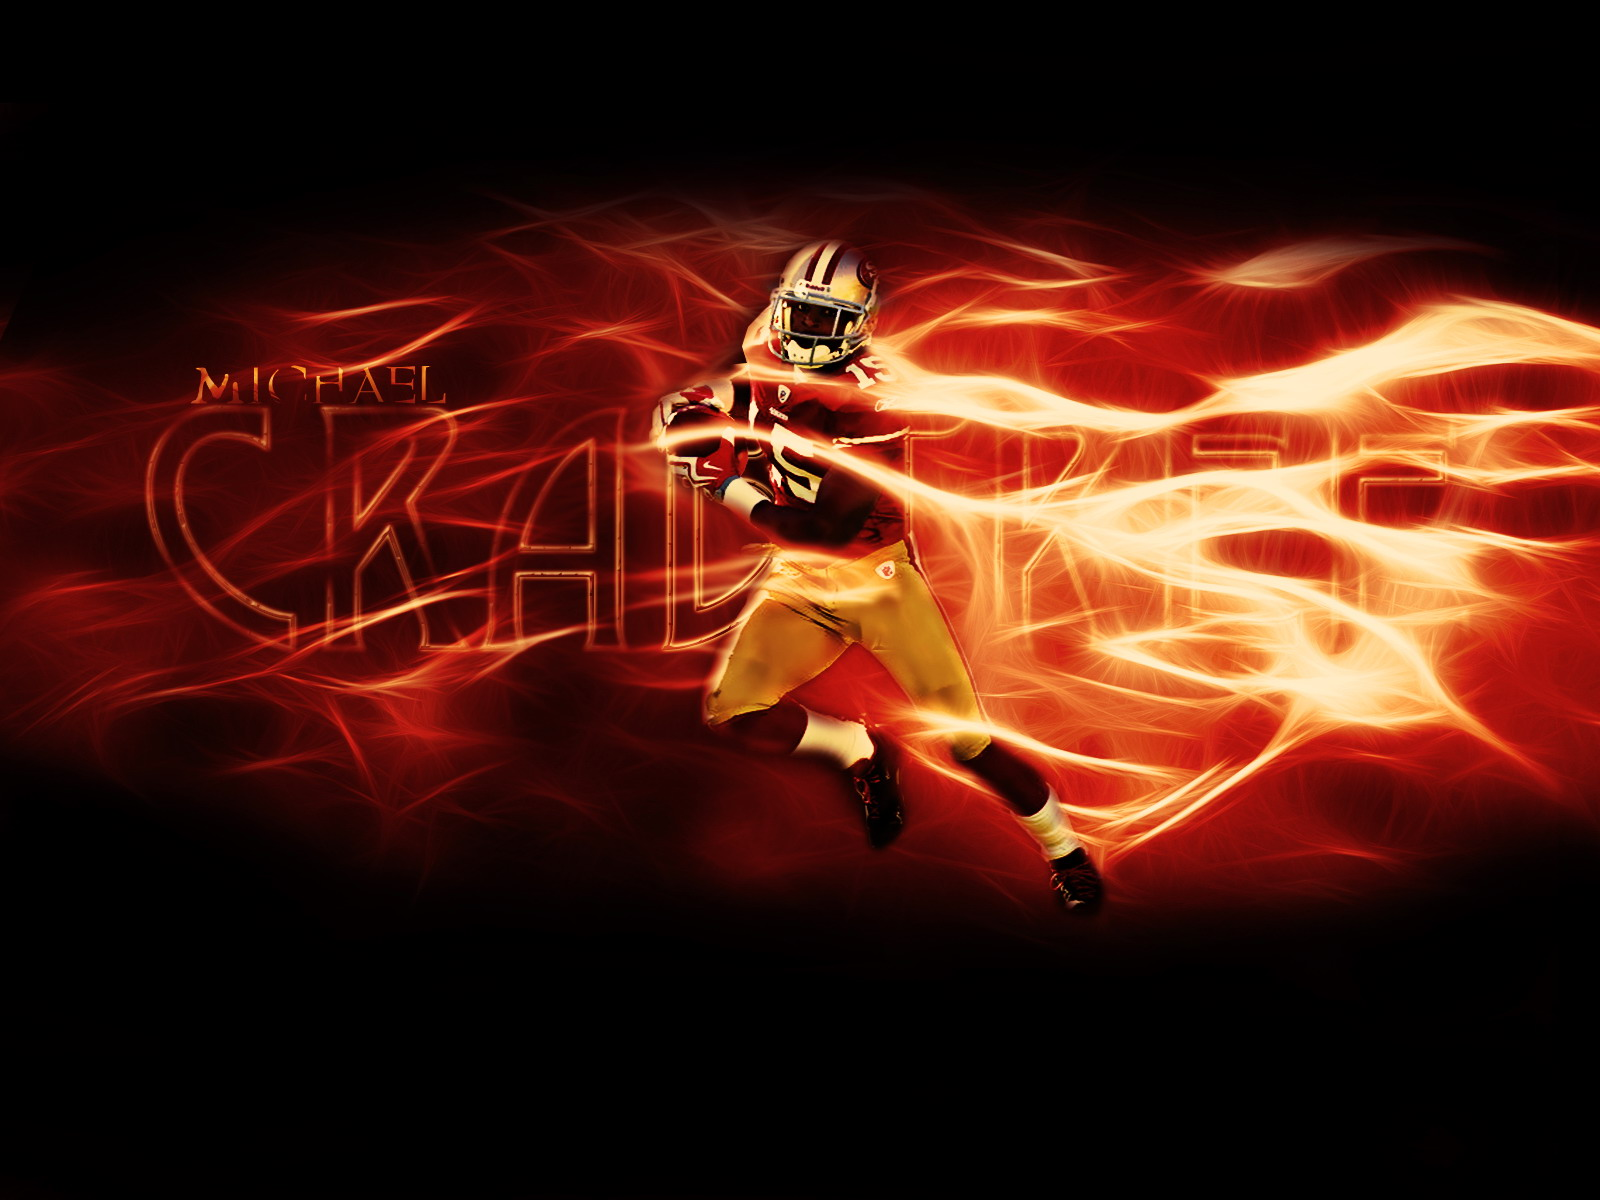 49ers Wallpapers Hd Wallpapers 1600x1200